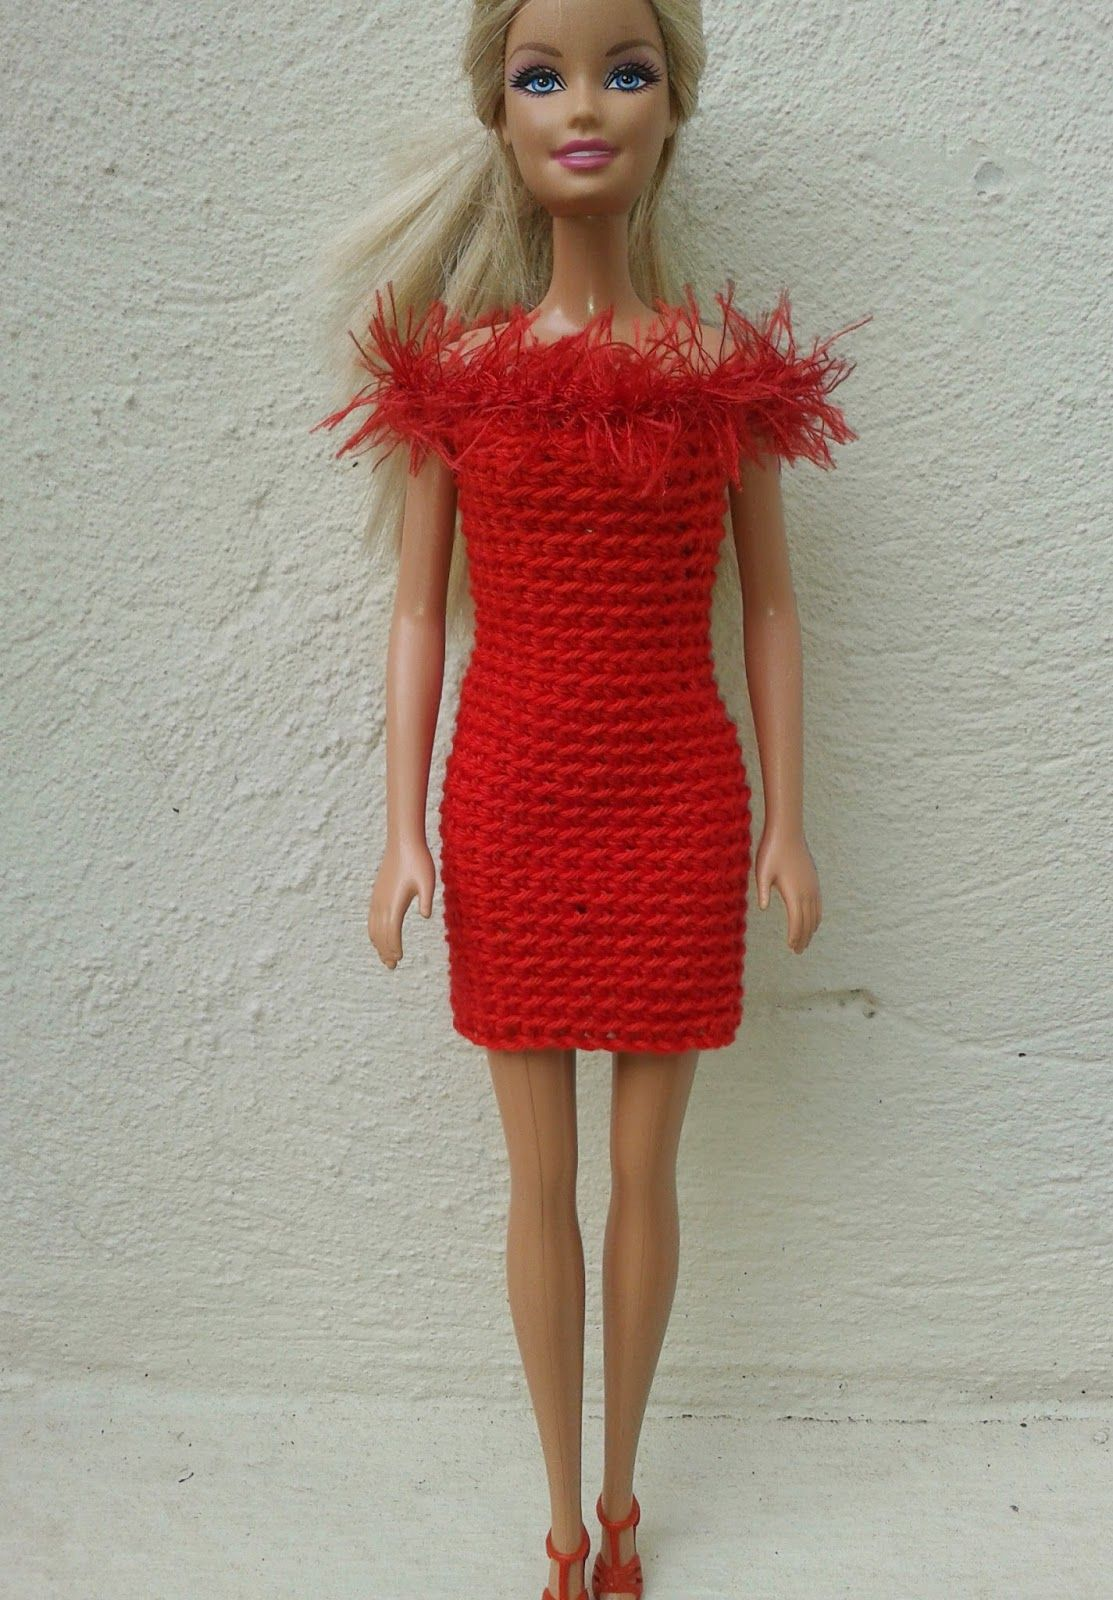 Linmary Knits: Barbie in red - crochet dresses   Barbie Kleider ...